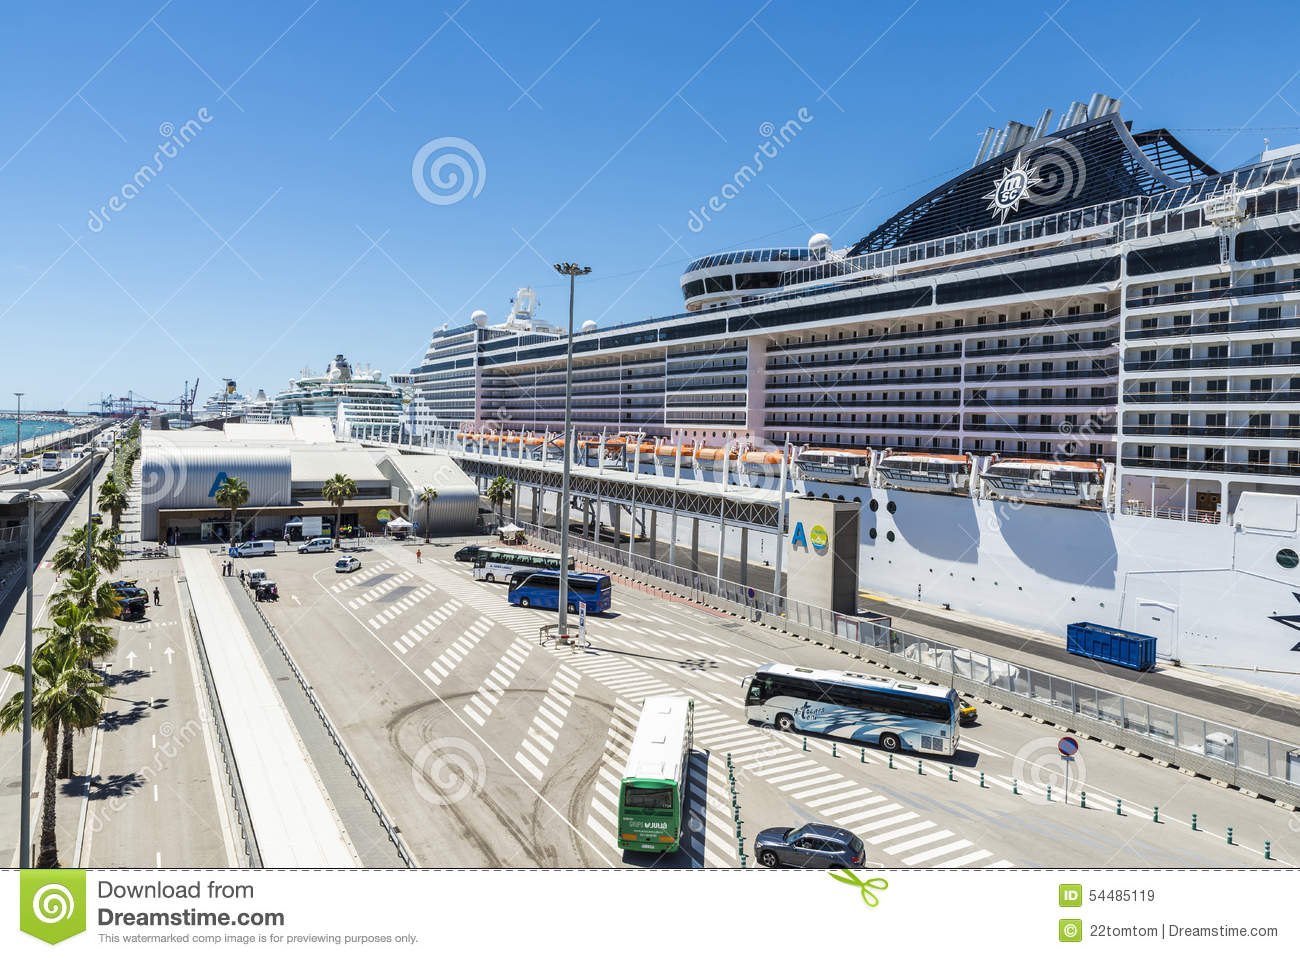 Celebrity Constellation - Itinerary Schedule, Current ...